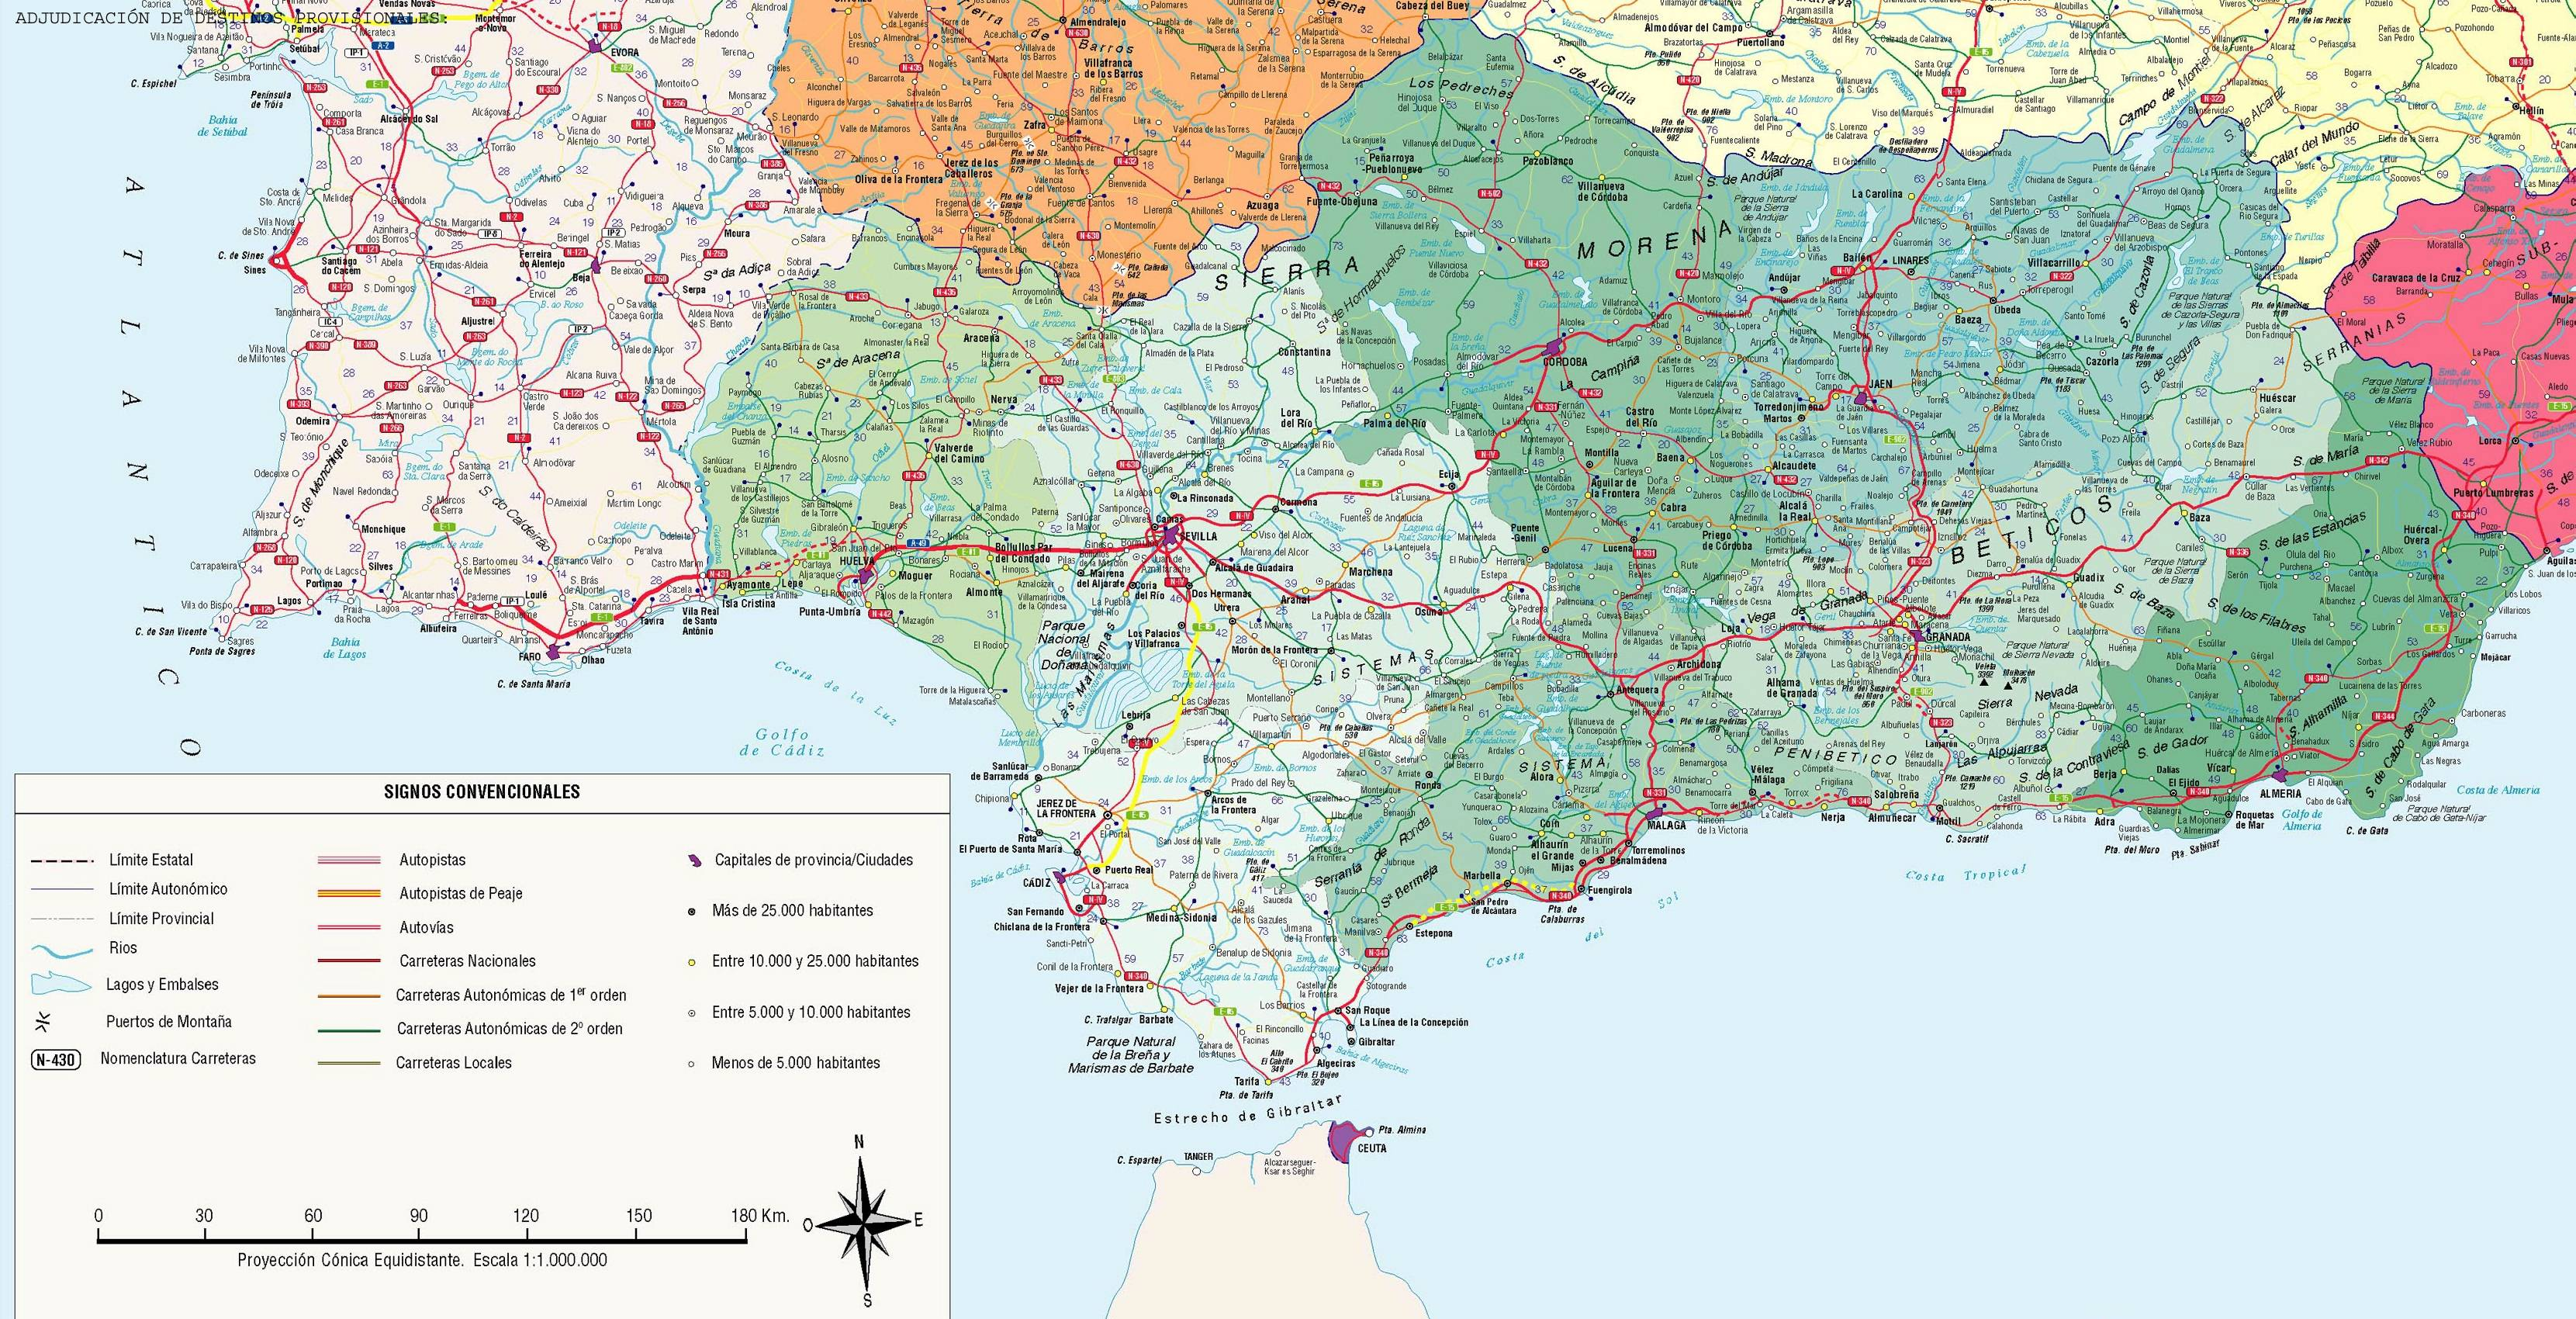 carte espagne sud detaillee - Photo